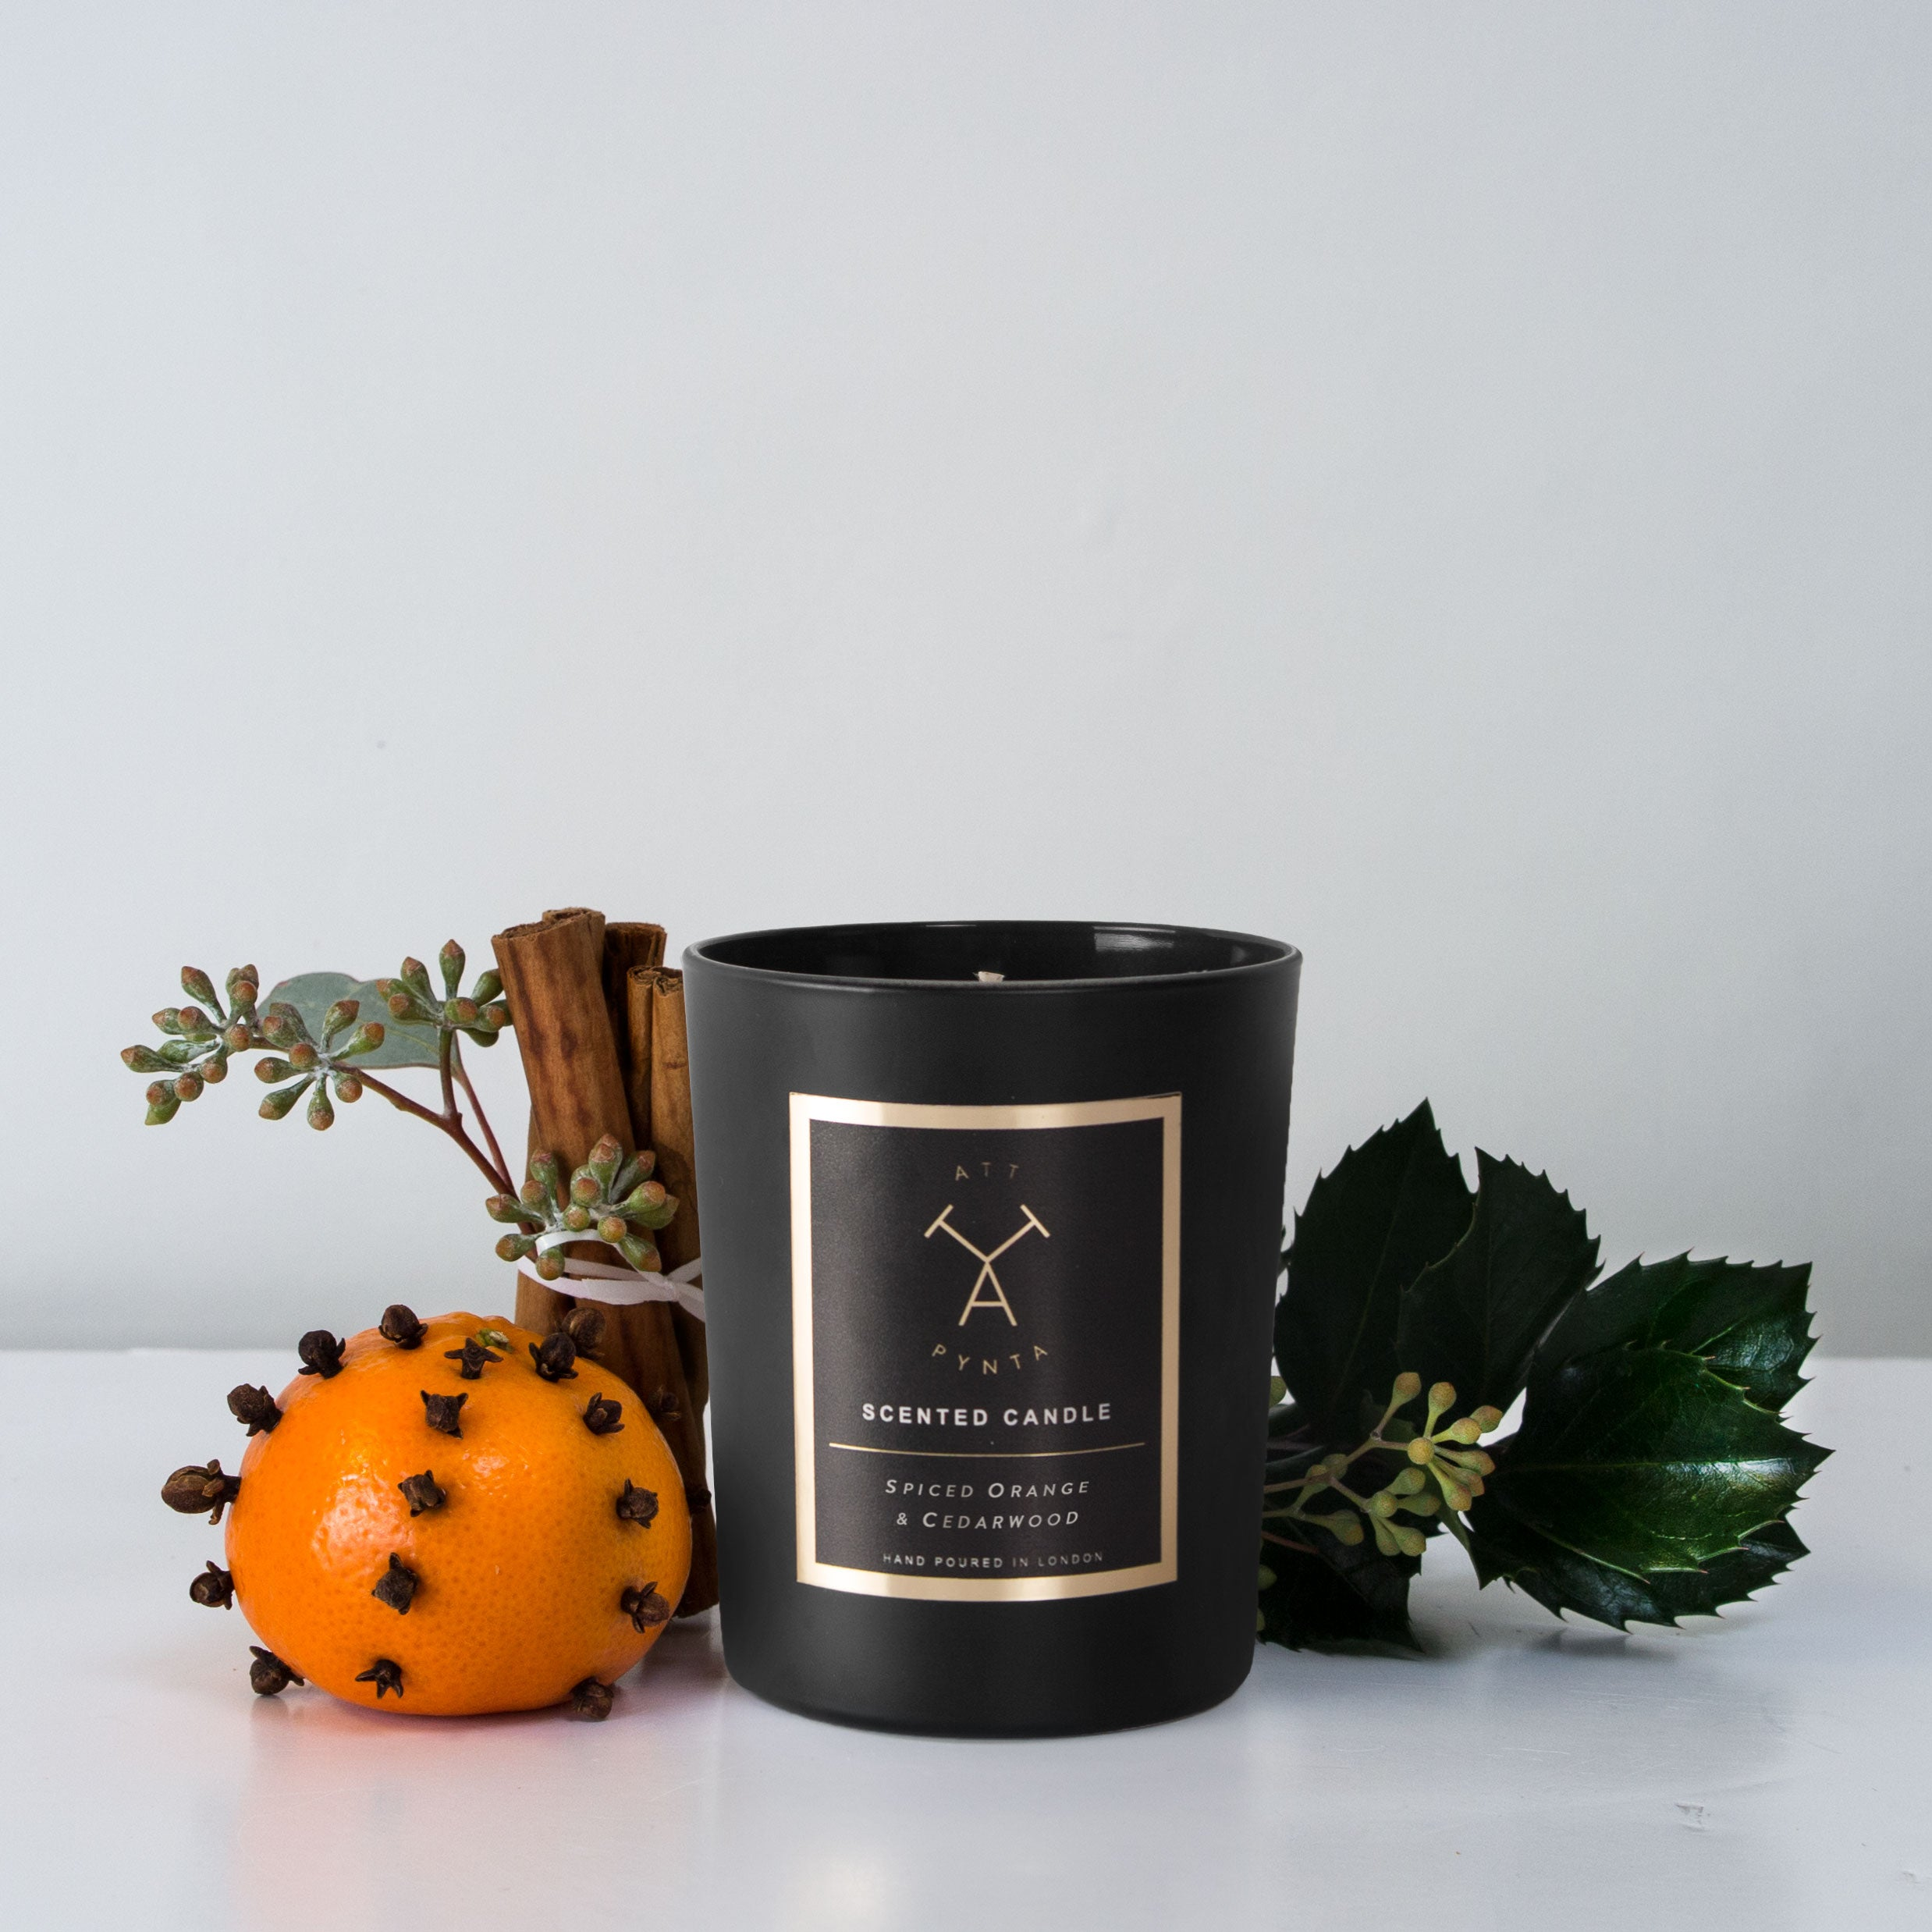 Spiced orange & Cedarwood scented candle